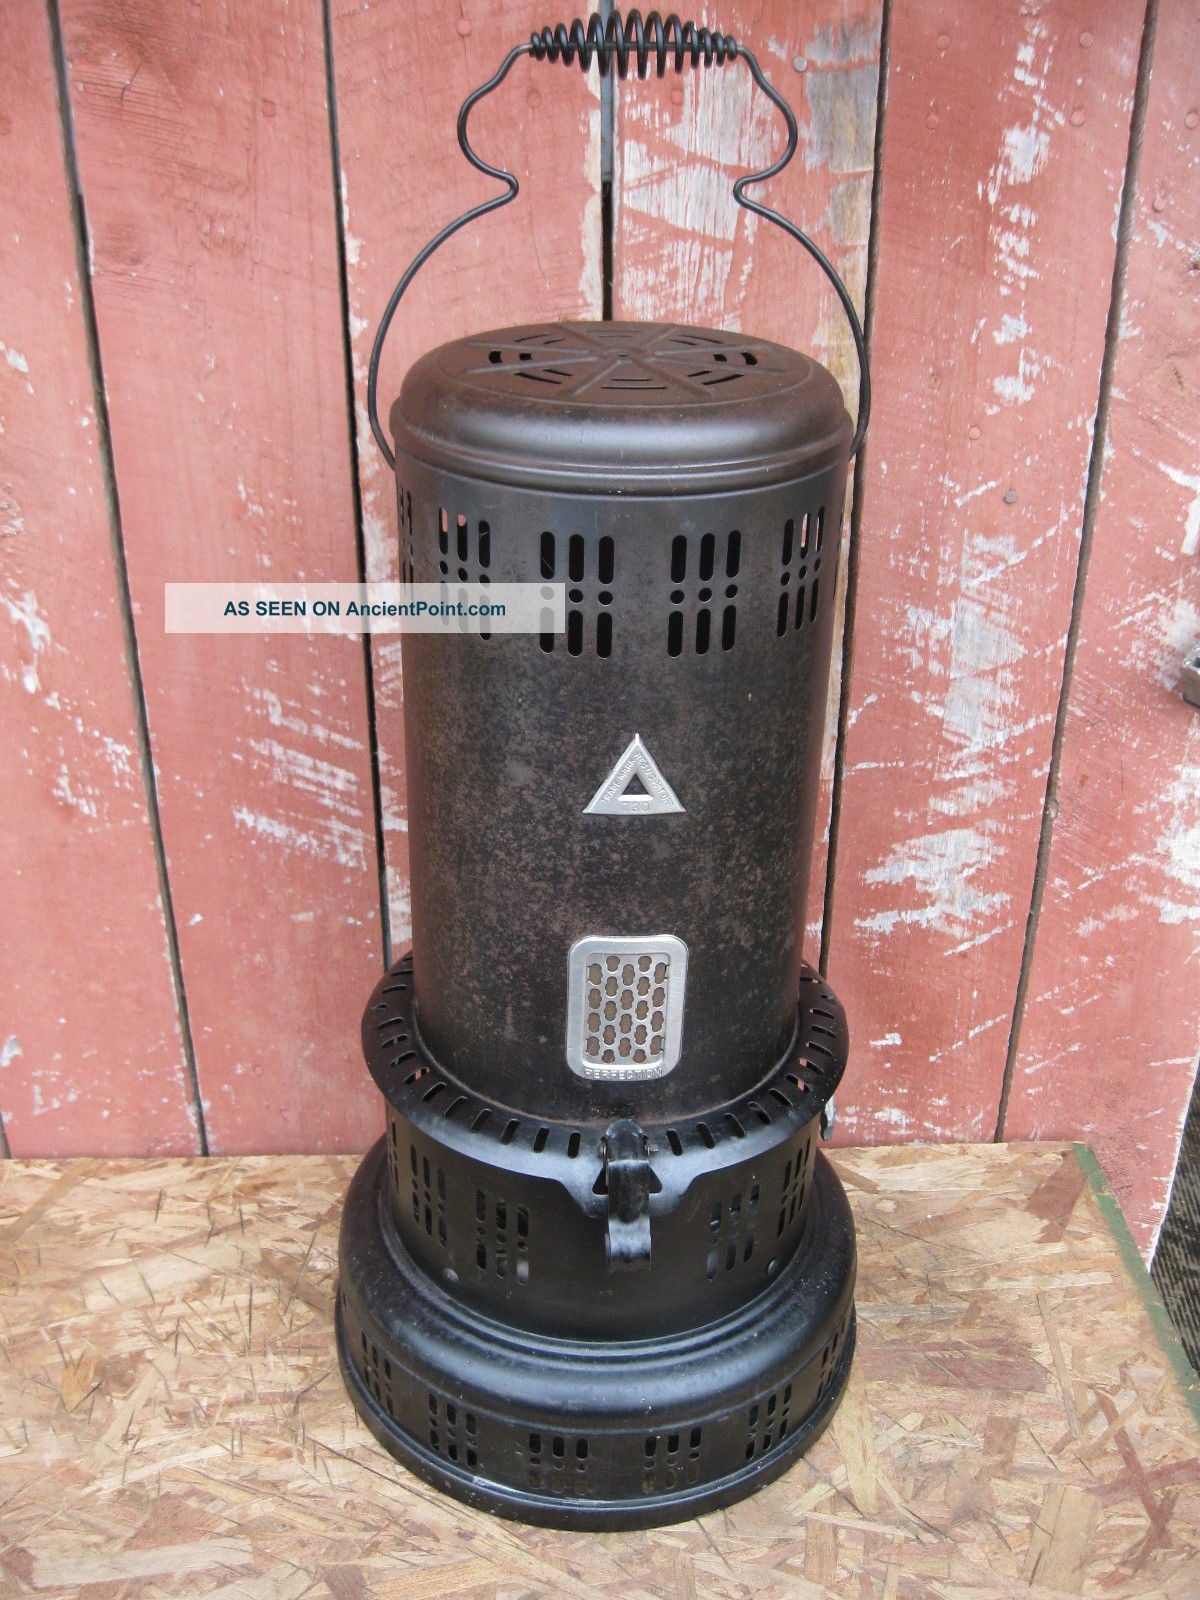 Vintage Perfection 730 Kerosene Heater Awesome Find Other Antique Home & Hearth photo